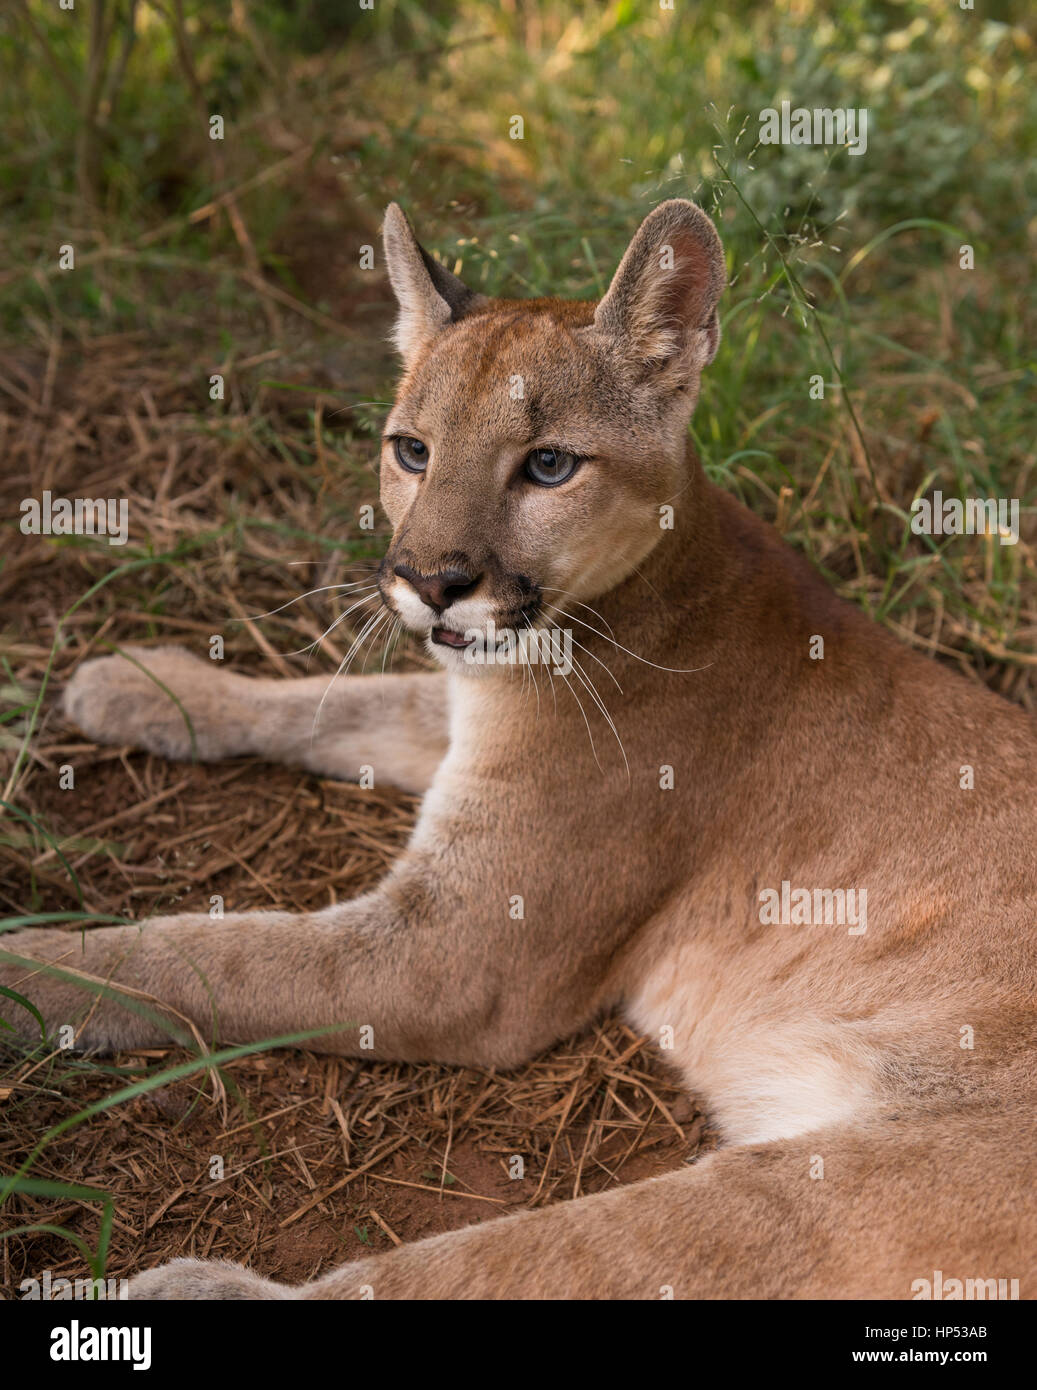 A large Puma cub from Central Brazil - Stock Image